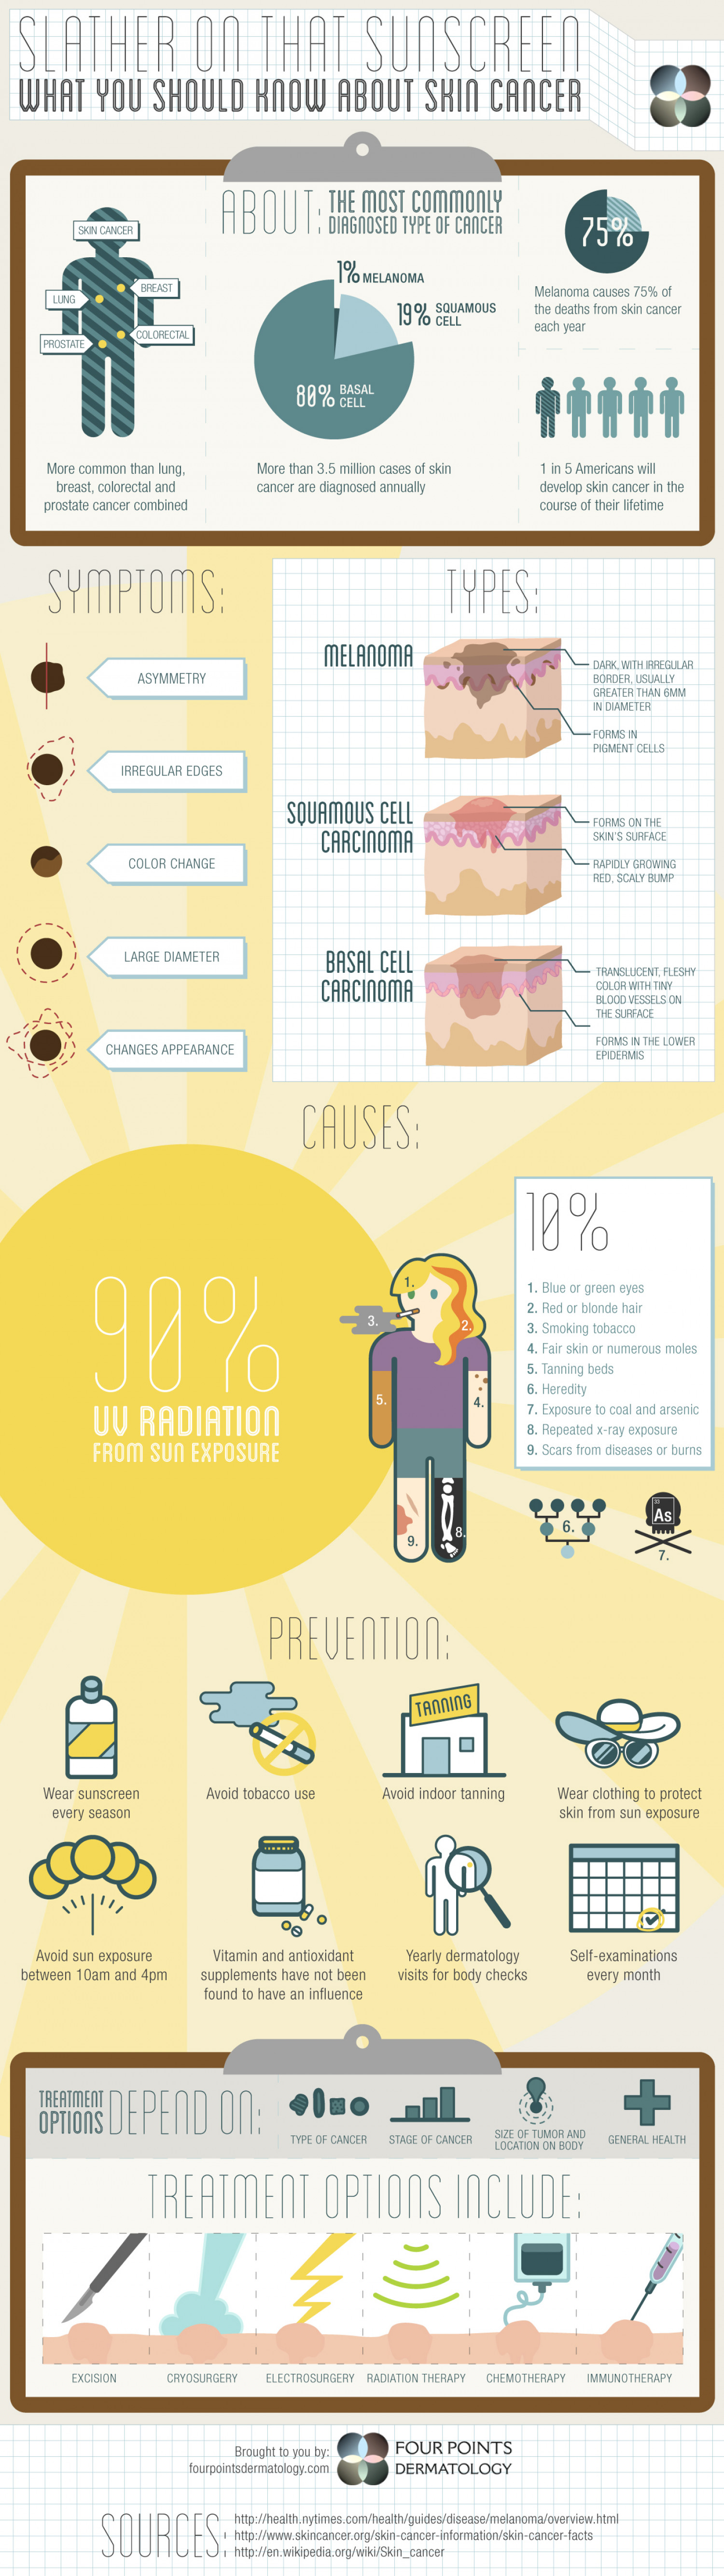 Slather on That Sunscreen: What You Should Know About Skin Cancer Infographic